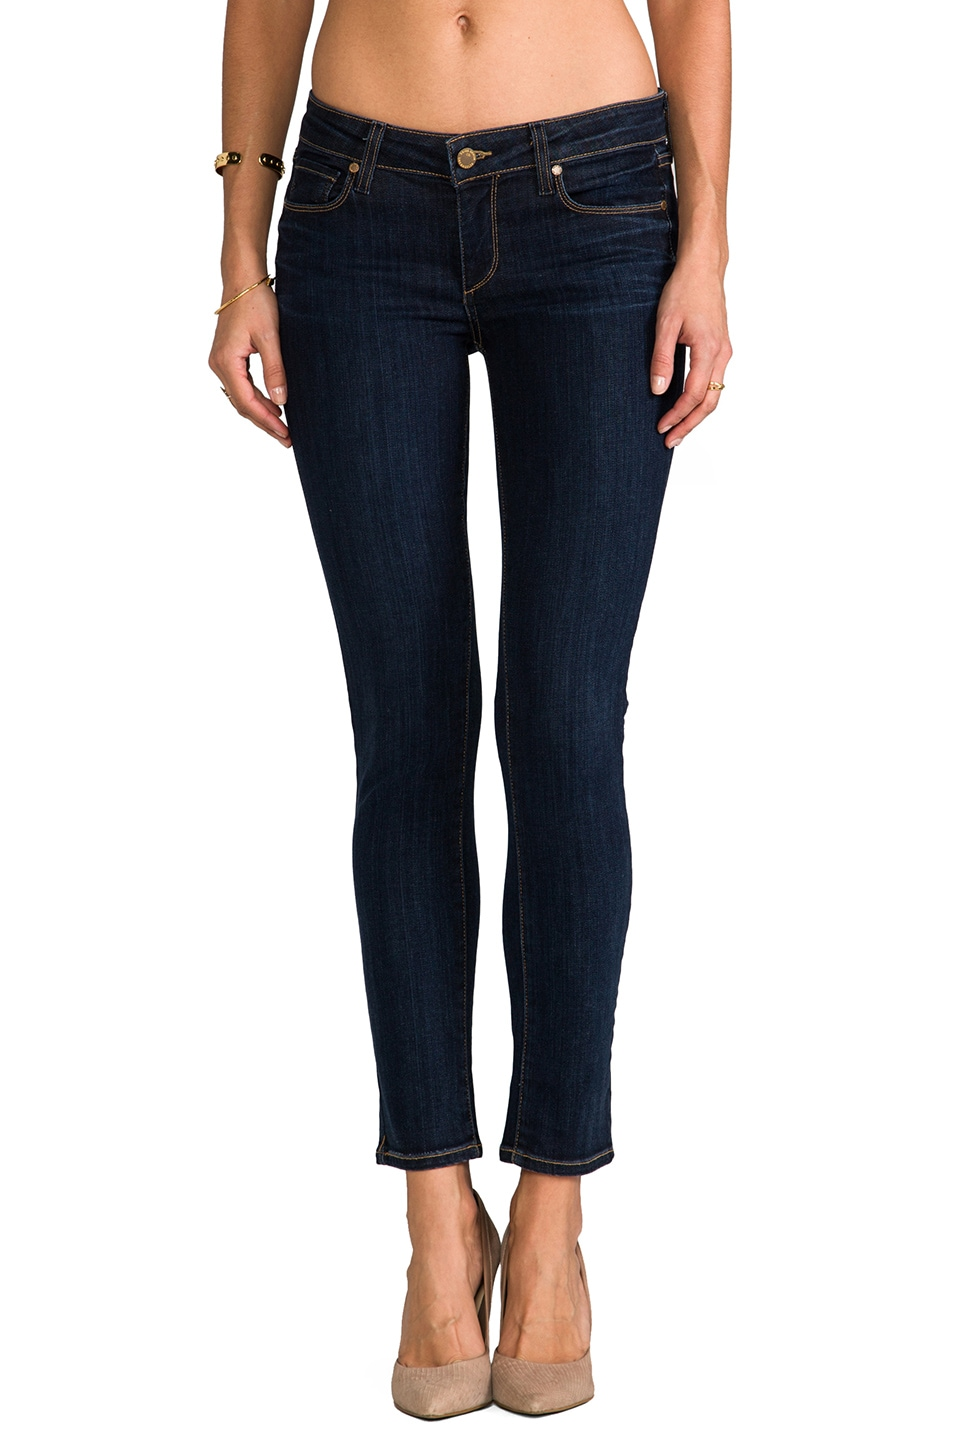 Paige Denim Skyline Ankle Peg in Delancey